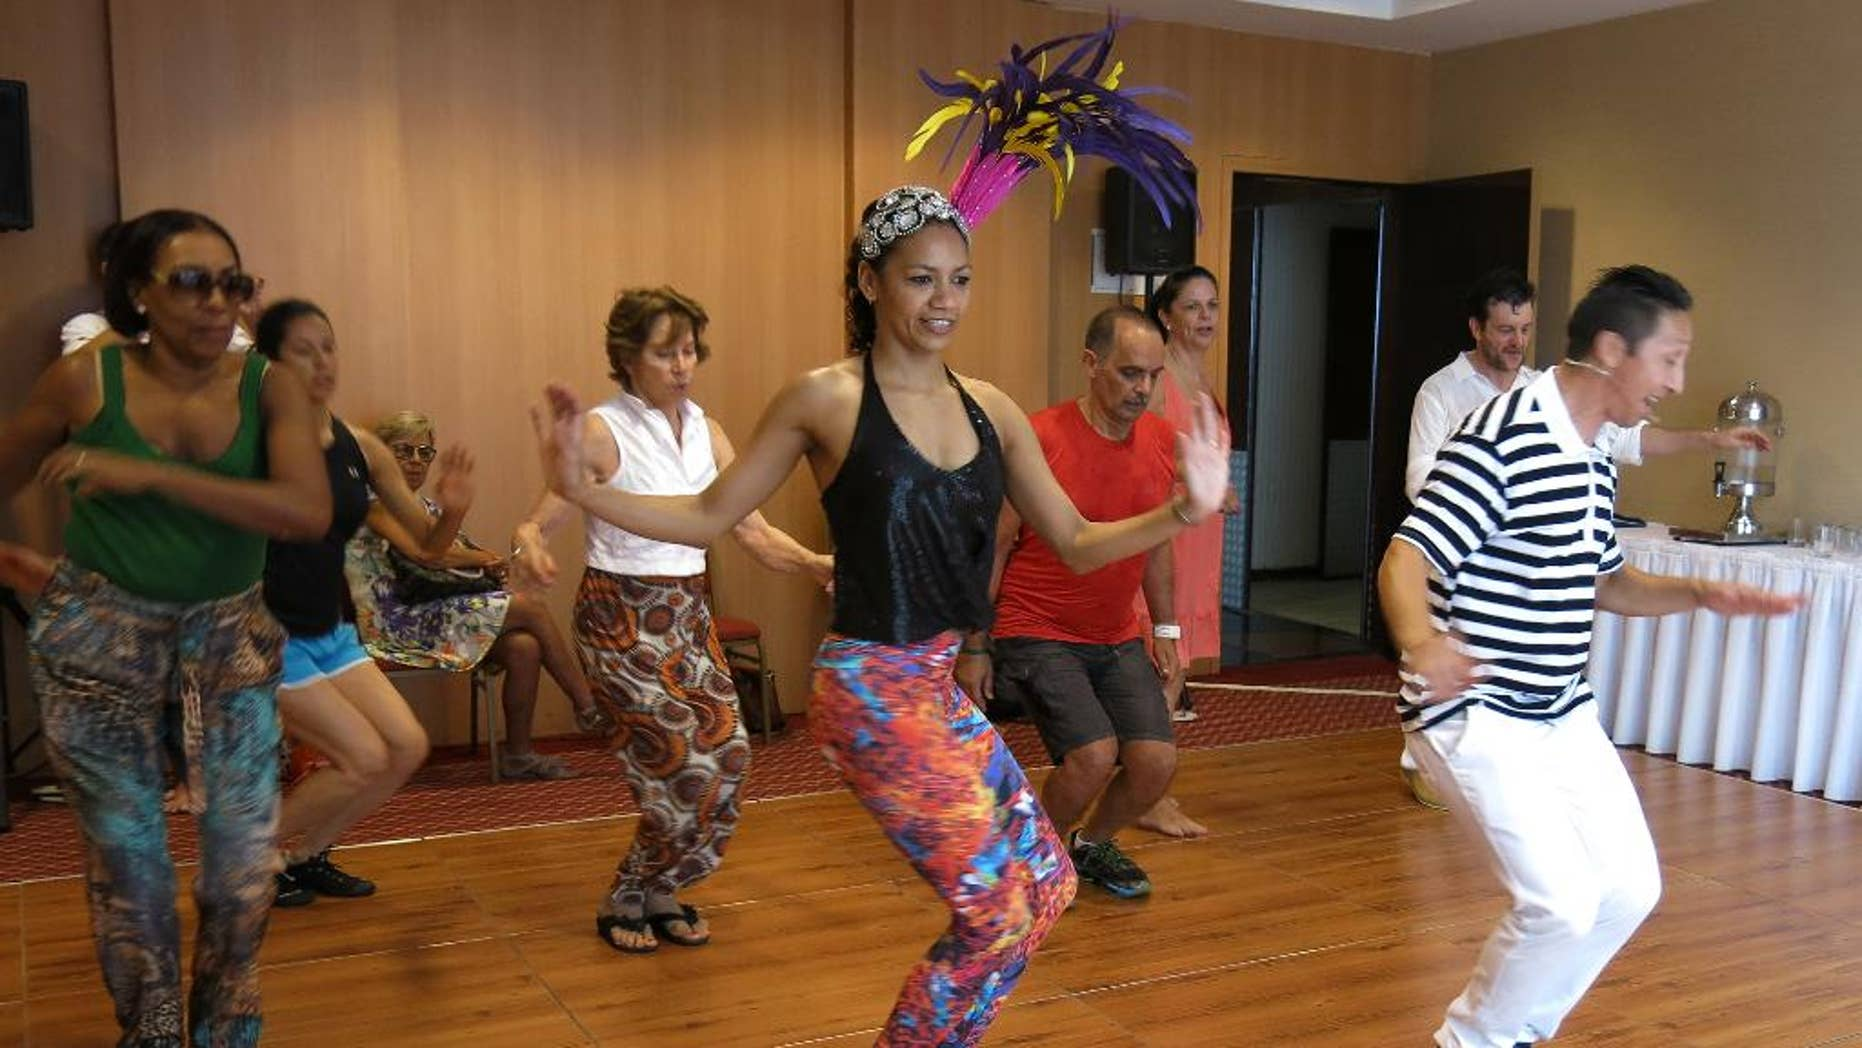 Nete Vieira, center, and her husband Naldi, right, teach samba to foreigners in Rio de Janeiro, Sunday, Feb. 15, 2015. There is a self-deprecating phrase Brazilians with poor dancing skills use to explain their awkwardness at the parades during Carnival: I samba like a foreigner. But even foreigners visiting Brazil for Carnival celebrations can learn a few basic moves thanks to the patience of dancing duo Nete Vieira and her husband Naldi. They teach the basics of rhythmic bouncing, marching and arm waving that will help newcomers have fun, and feel less intimidated, while joining the raucous parties that crowd the streets of Rio de Janeiro. (AP Photo/Adriana Gomez)